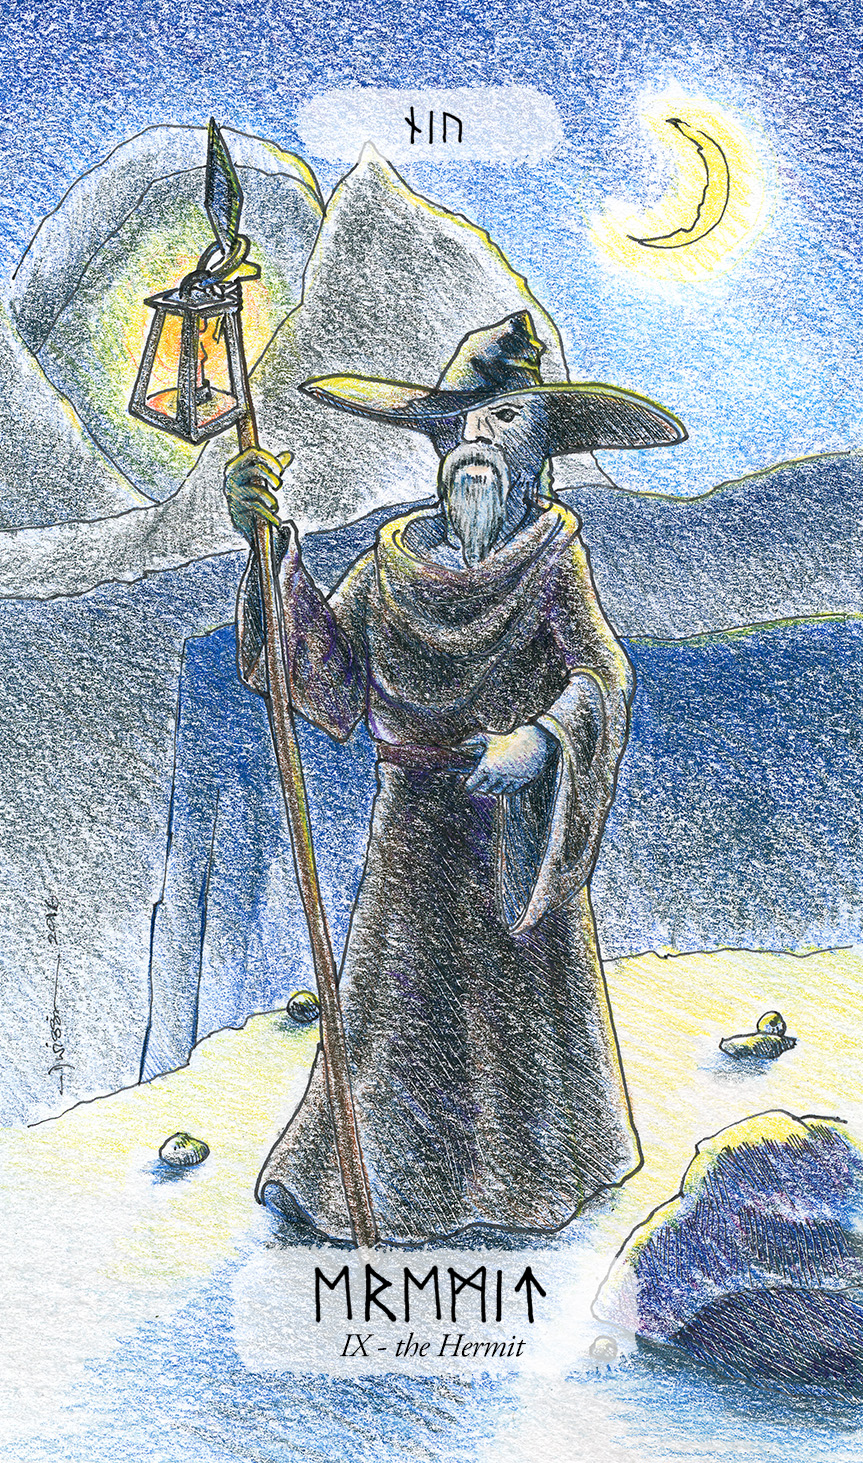 Odin (again) as the Hermit